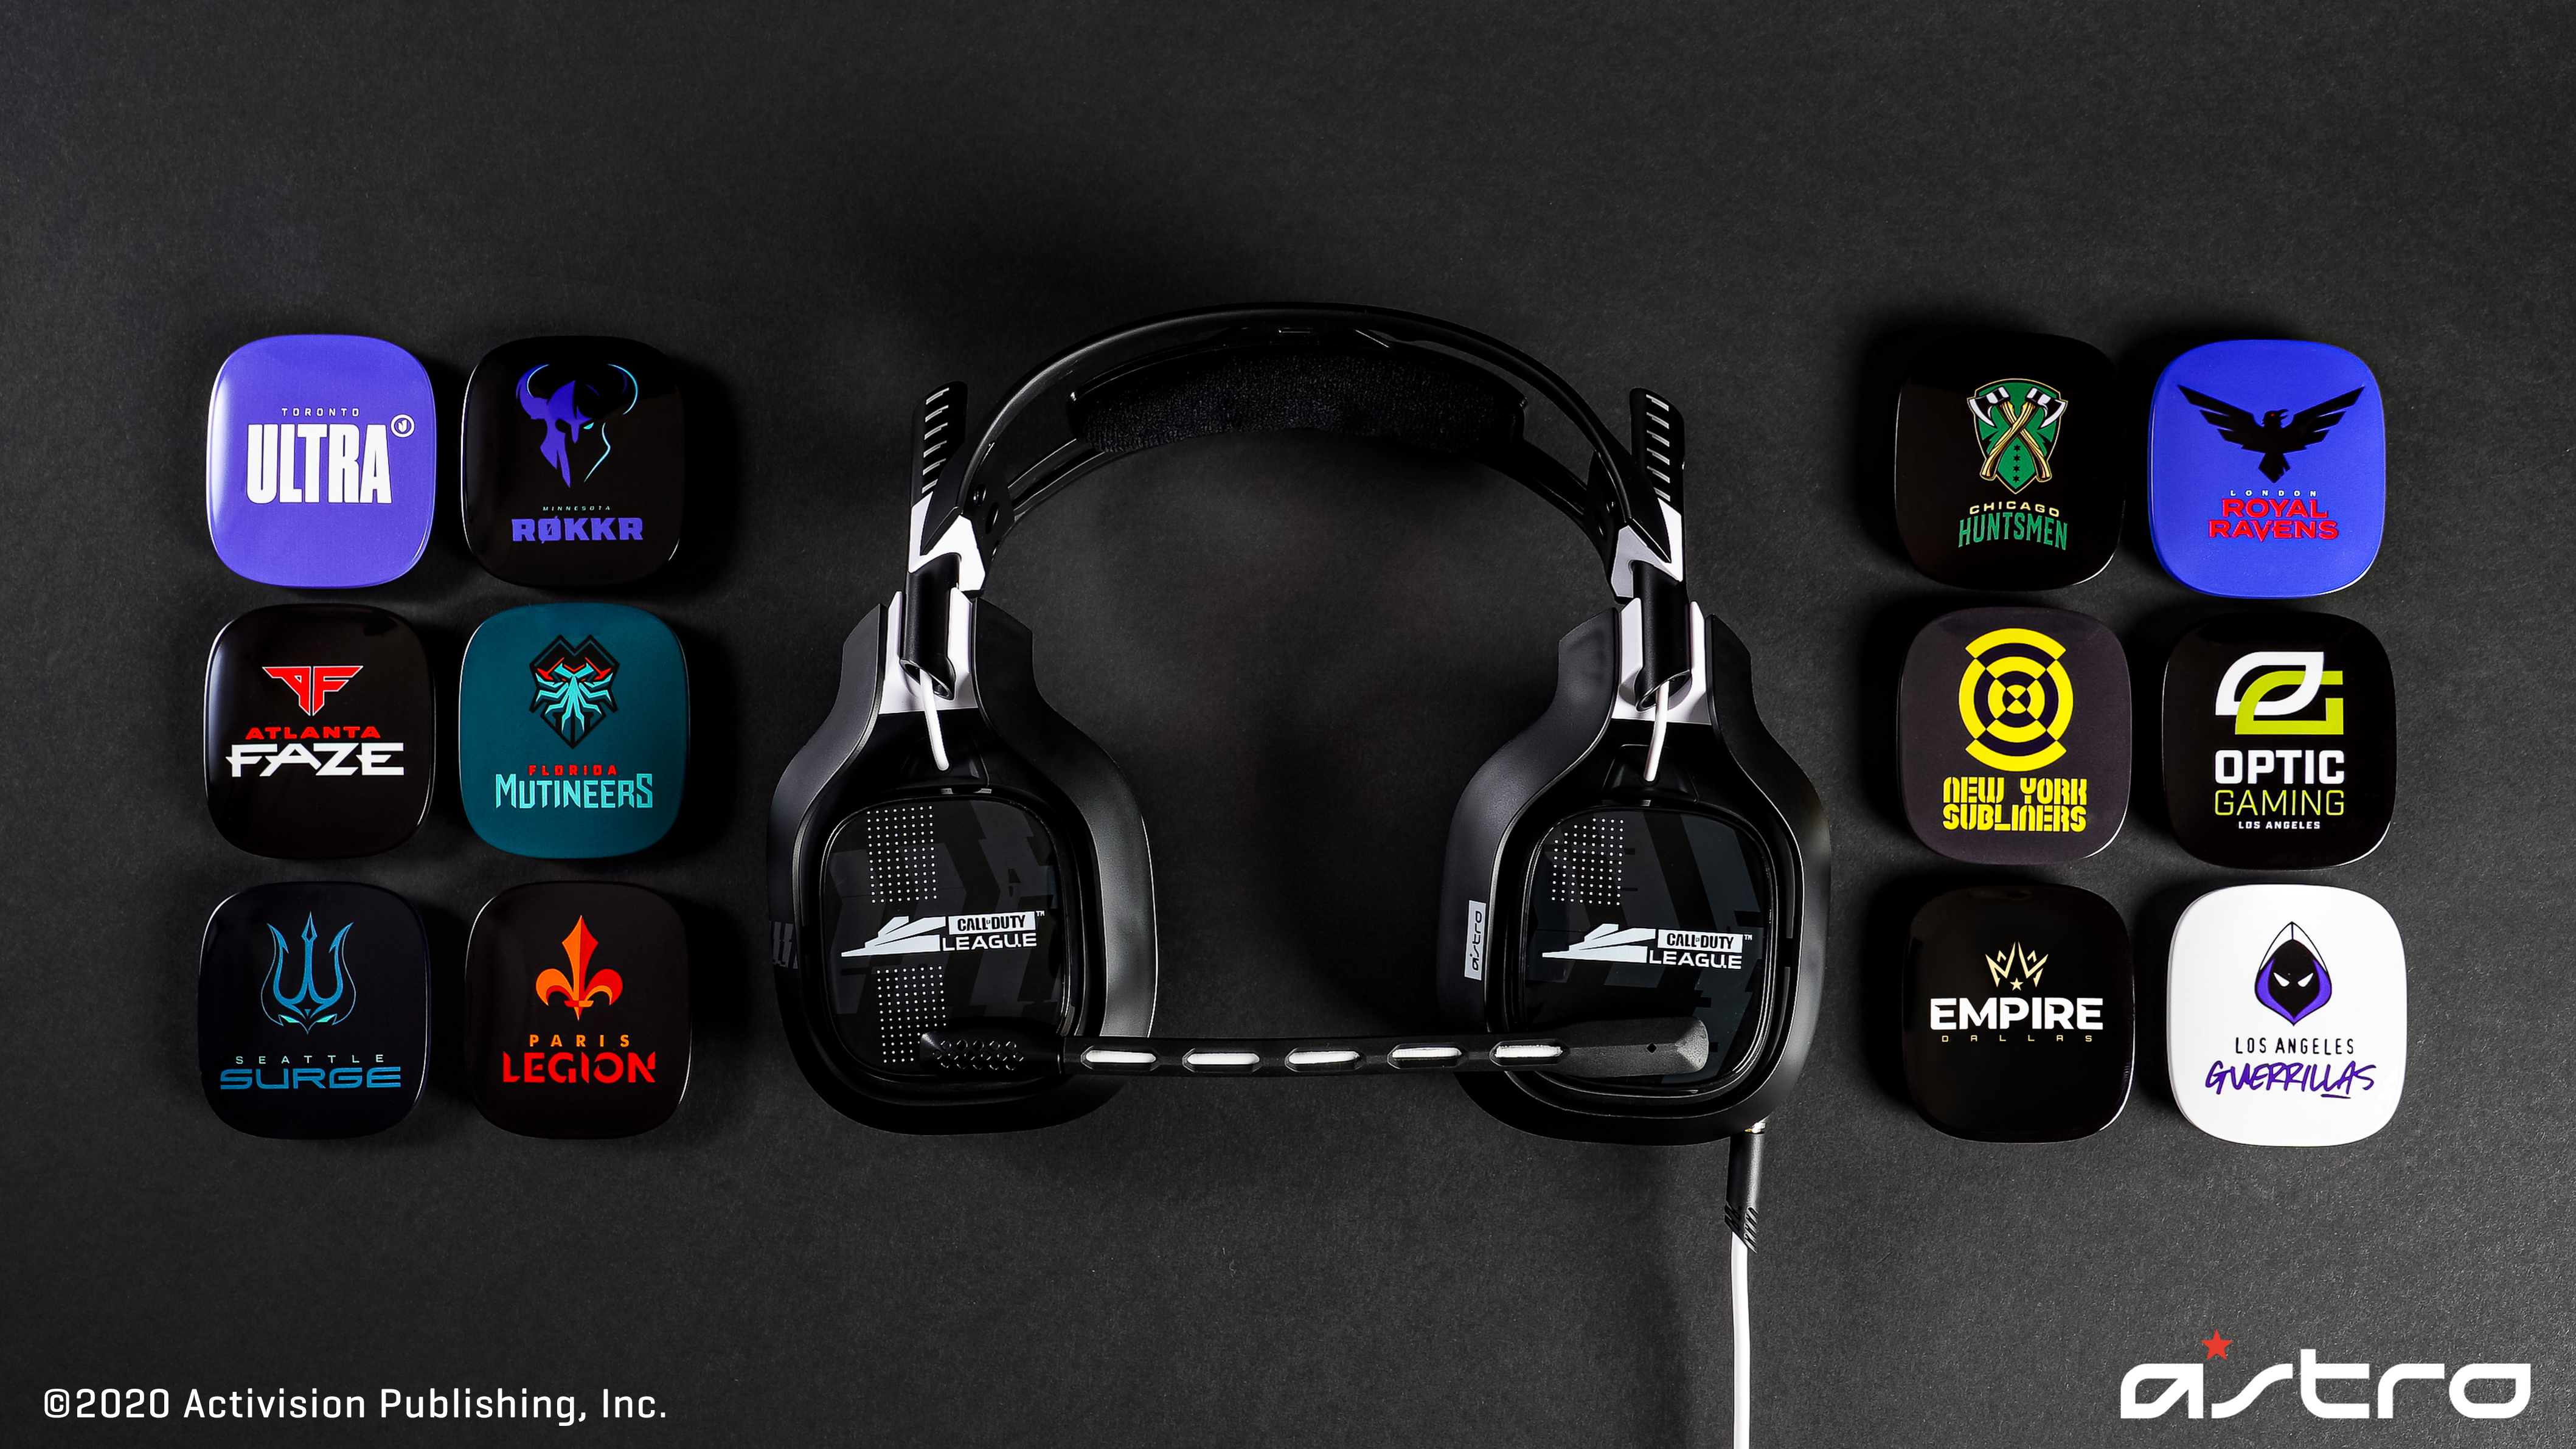 CDL A40 TR + Pro Team Speaker Tags Giveaway Terms and Conditions